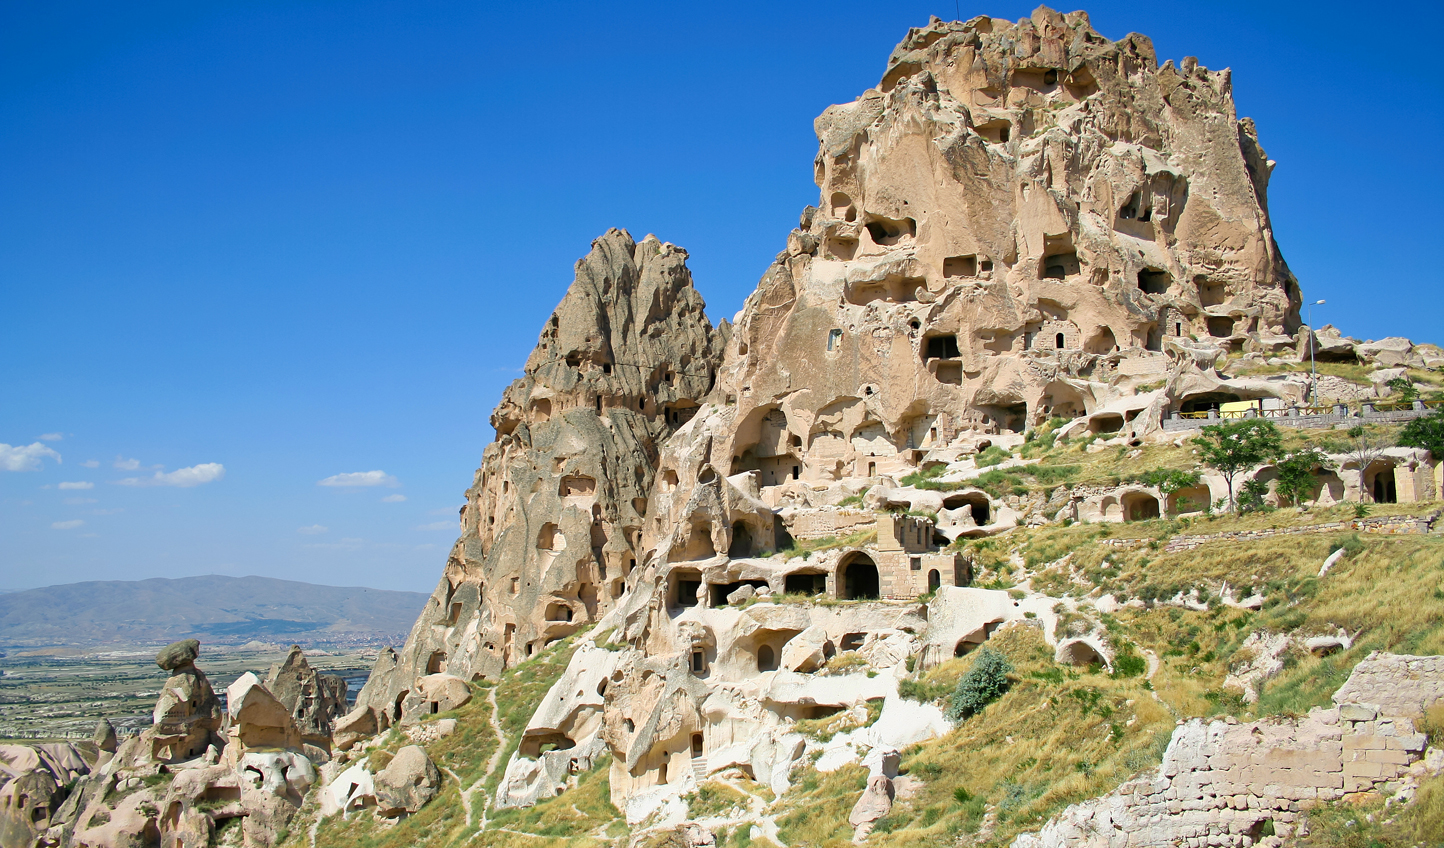 Climb Uçhisar Castle for spectacular views over the panoramic Pigeon Valley